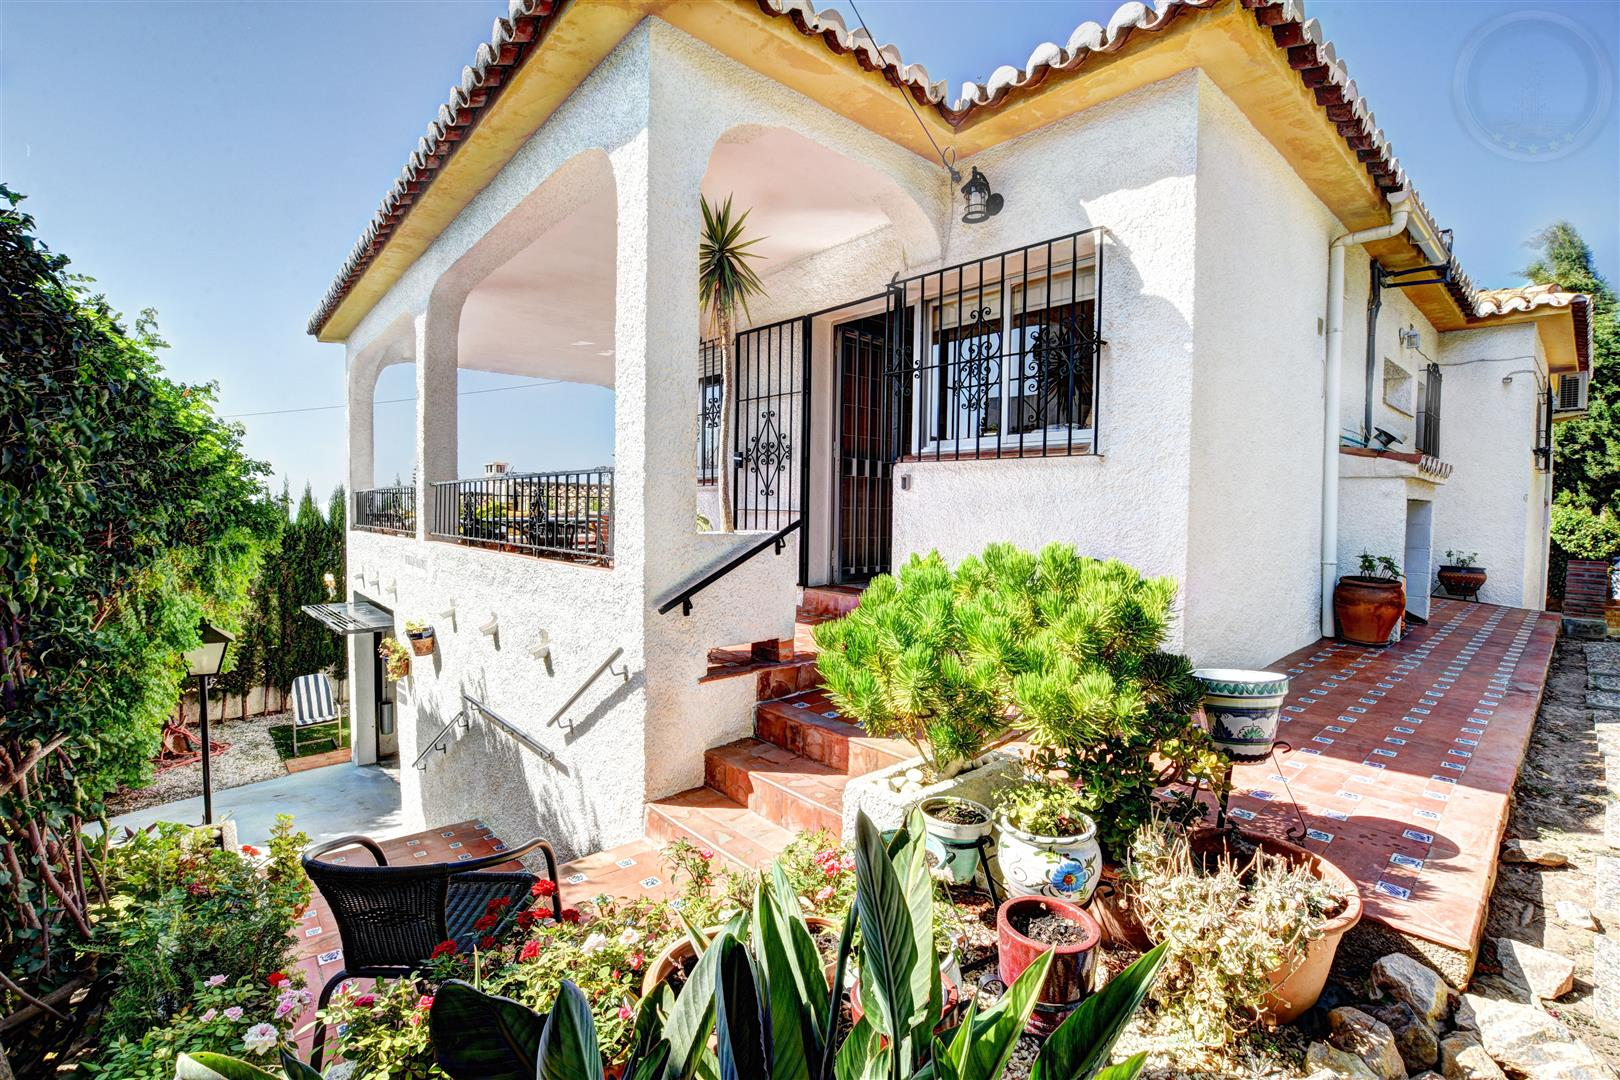 Villa for sale in Arroyo de la Miel 2